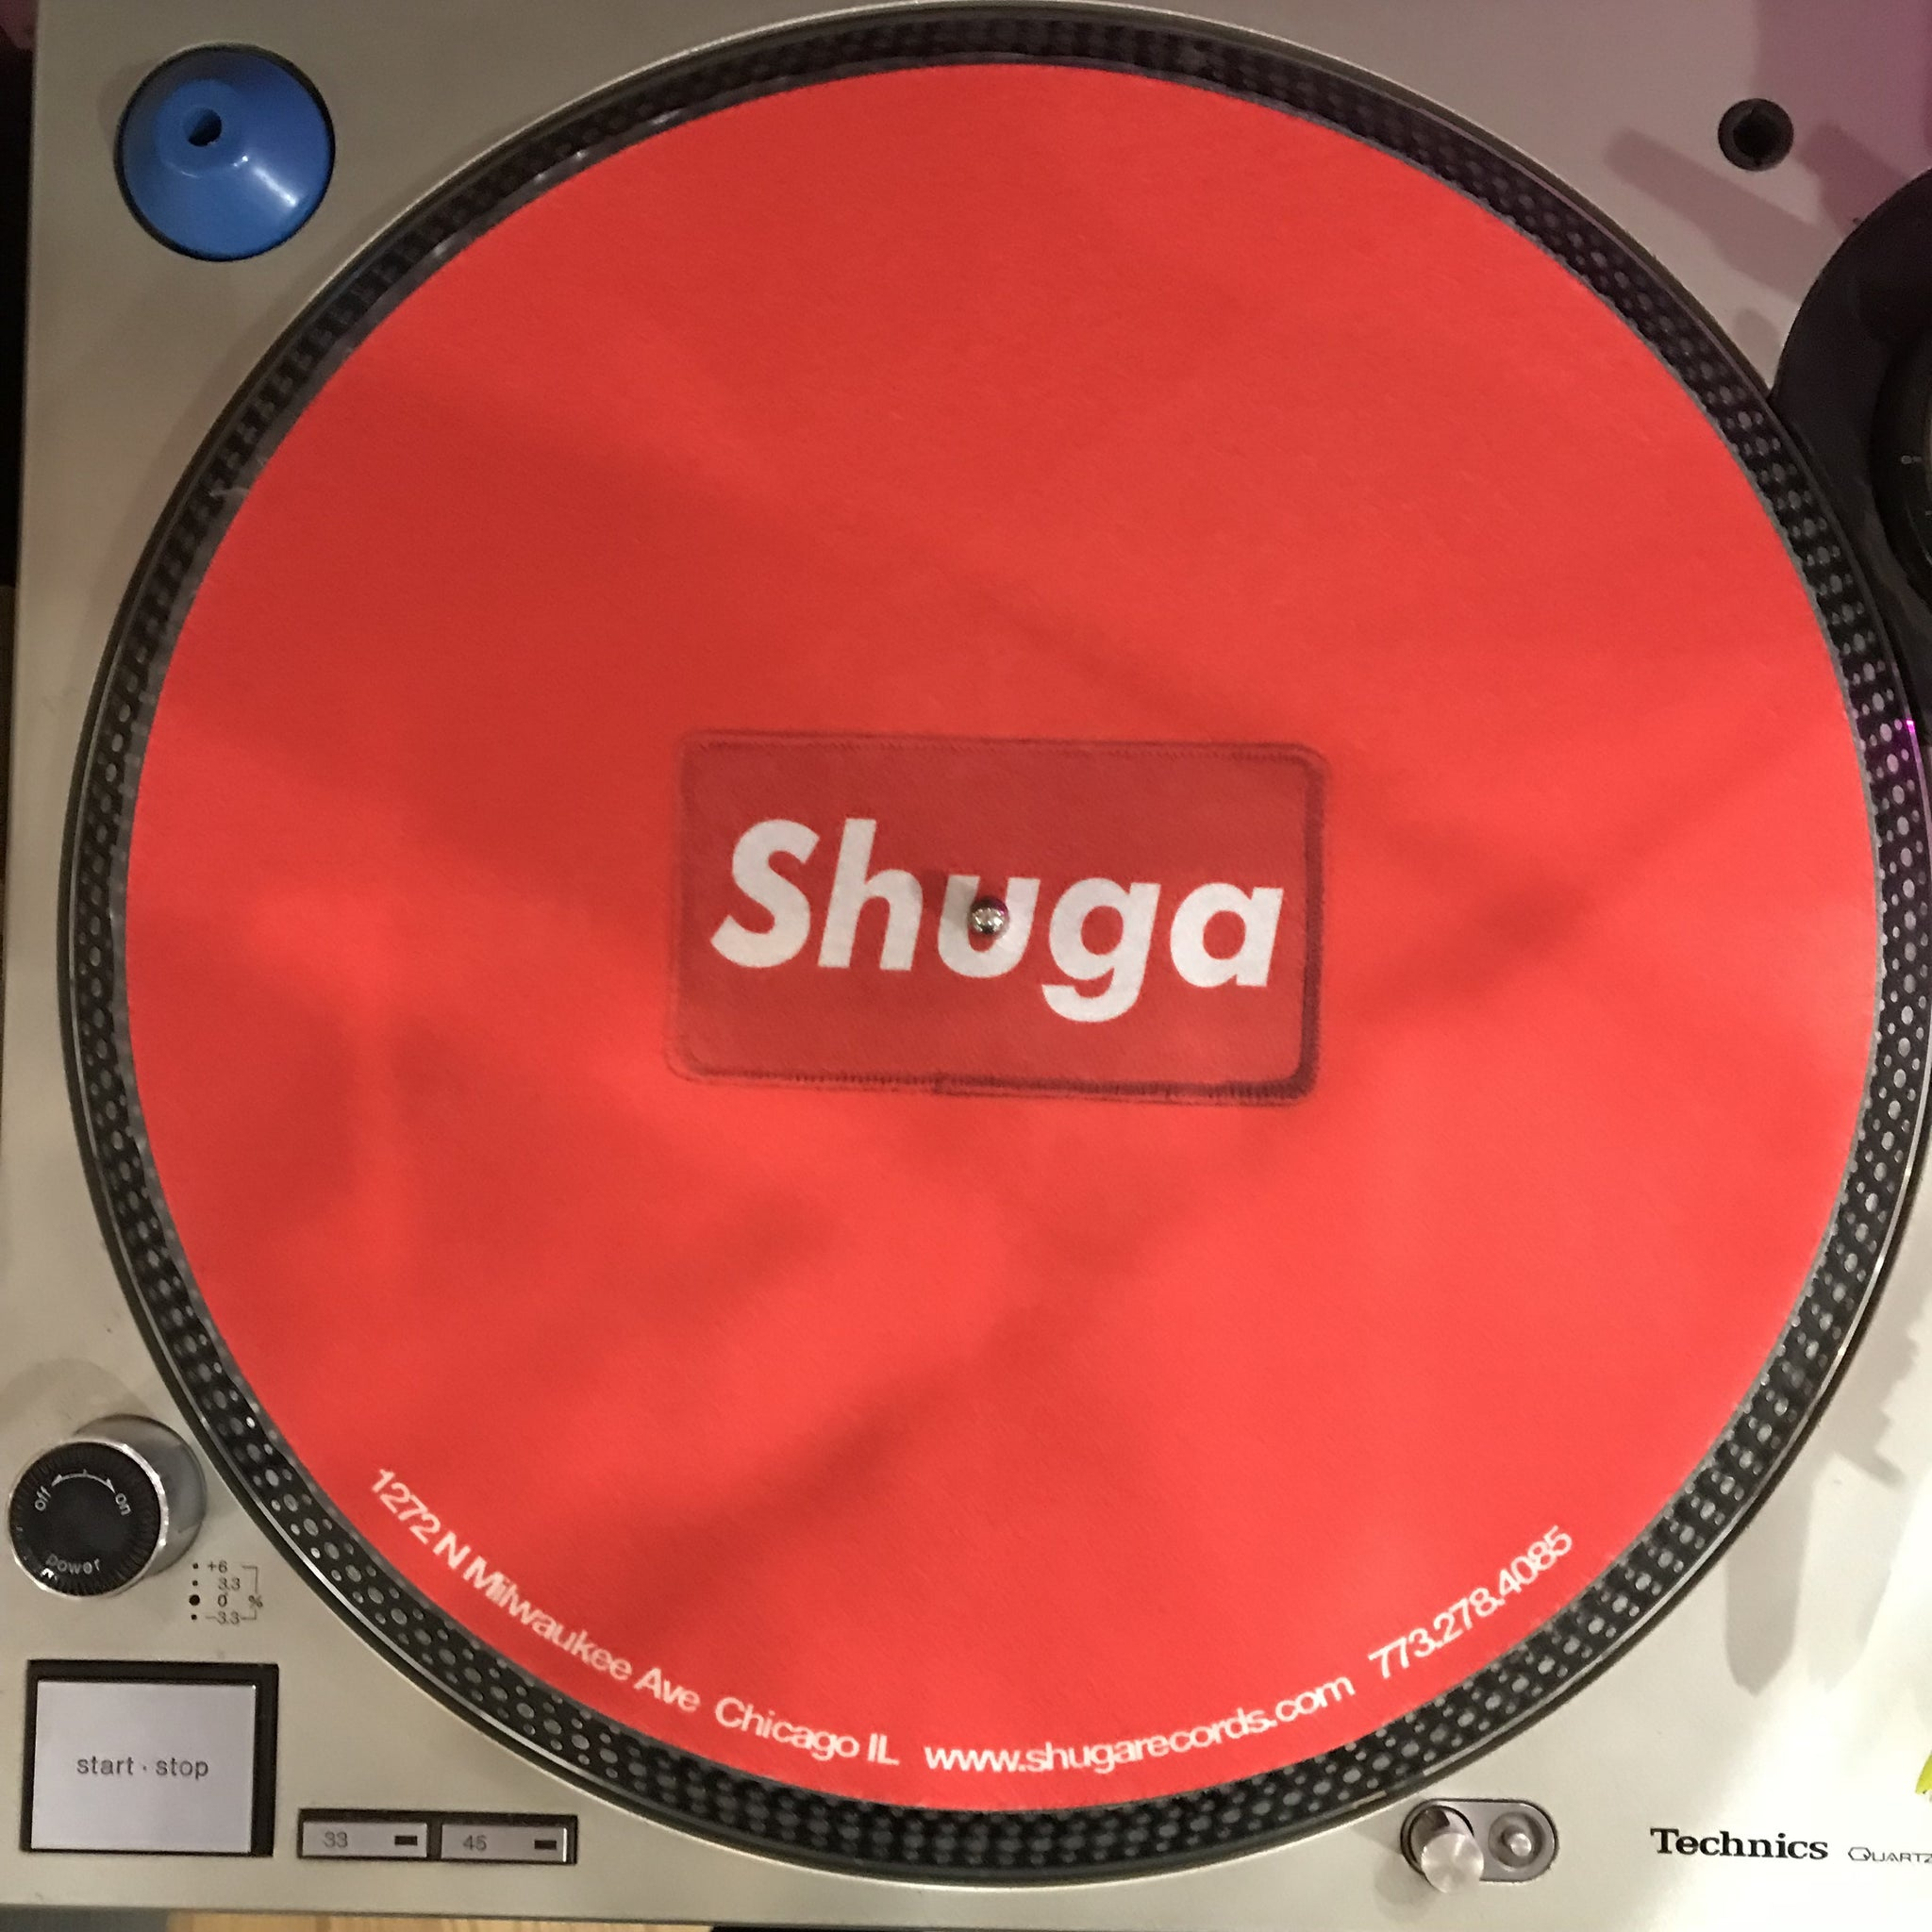 Shuga Records 2018 Limited Edition Vinyl Record Slipmat Supreme Red on Red Patch